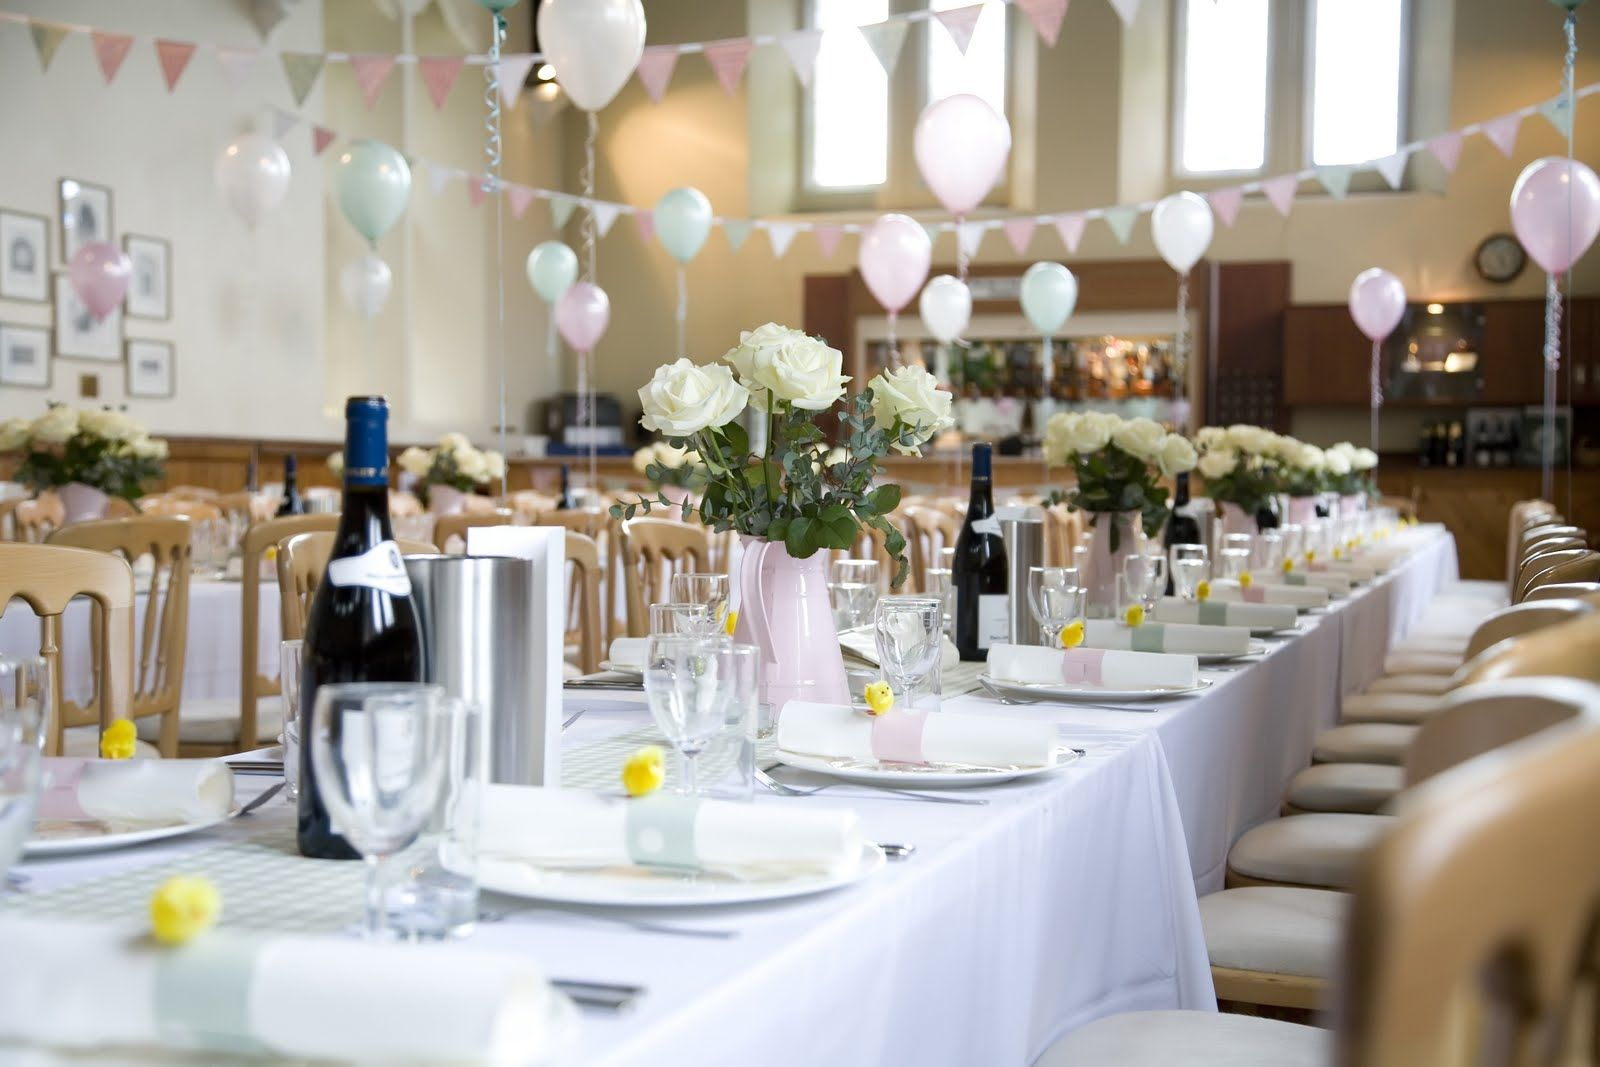 Light and airy village hall wedding decor party ideas pinterest light and airy village hall wedding decor junglespirit Images